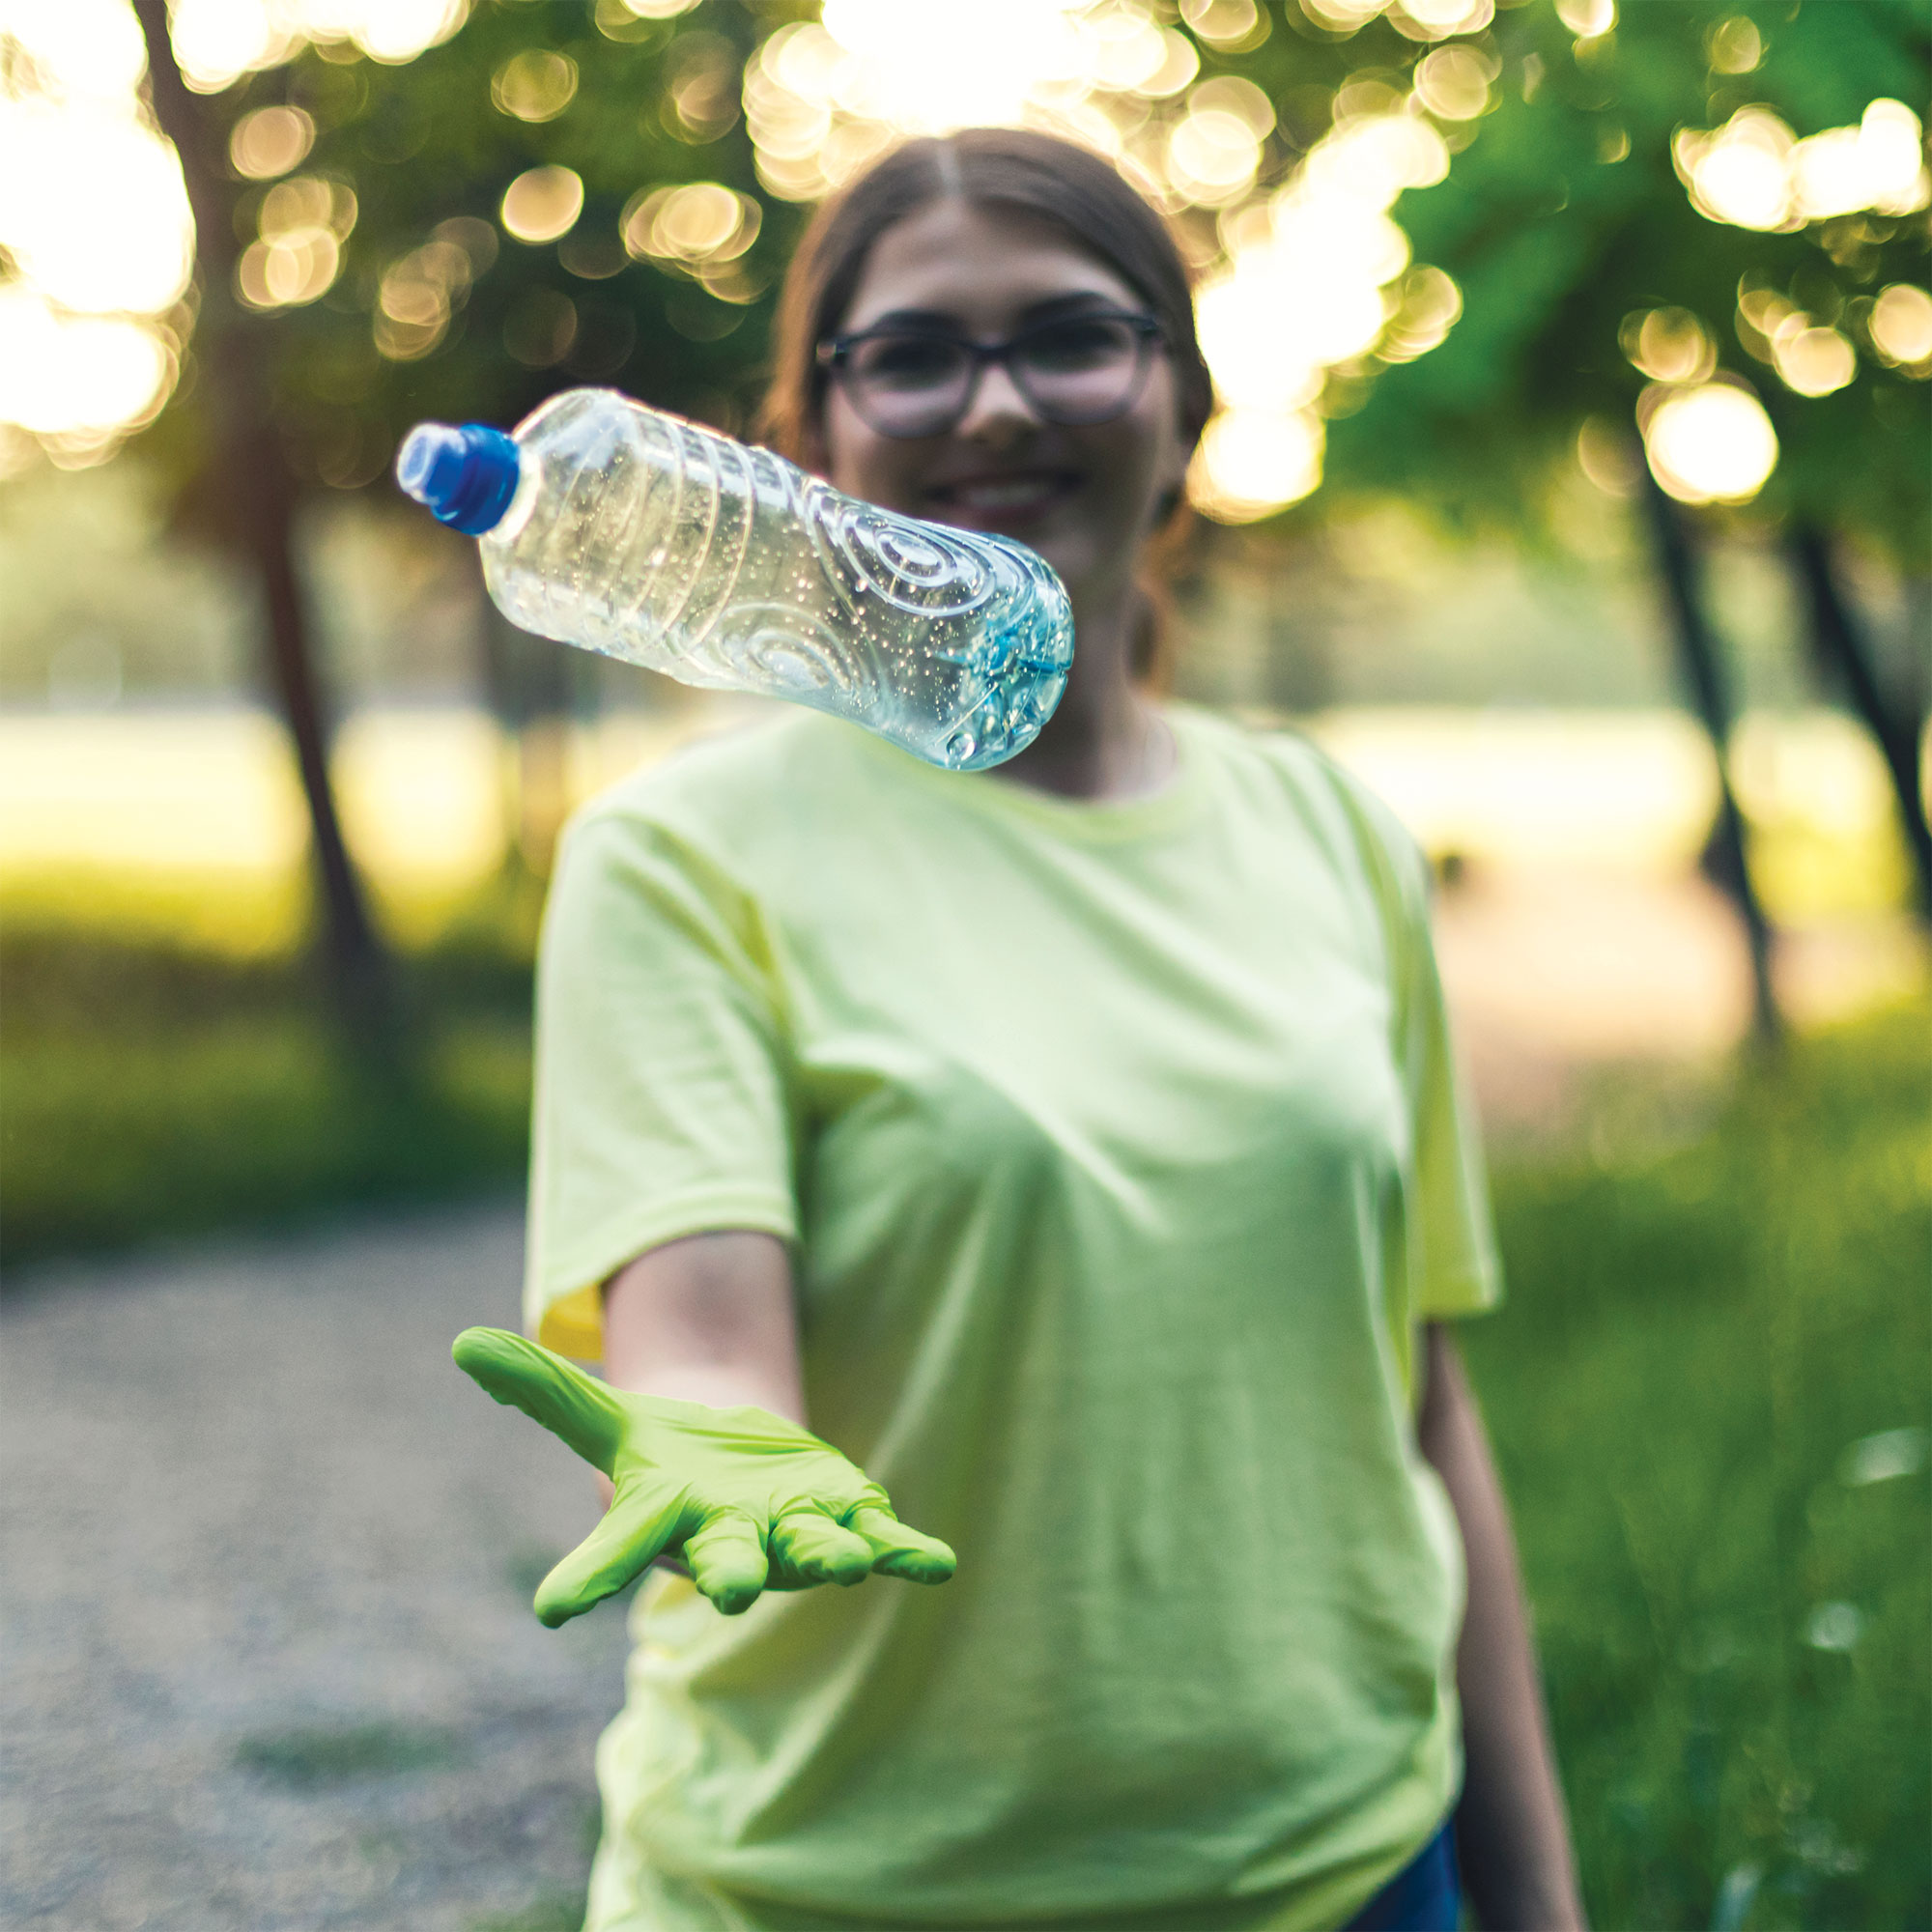 A teenager wears gloves to pick up plastic waste in a park.